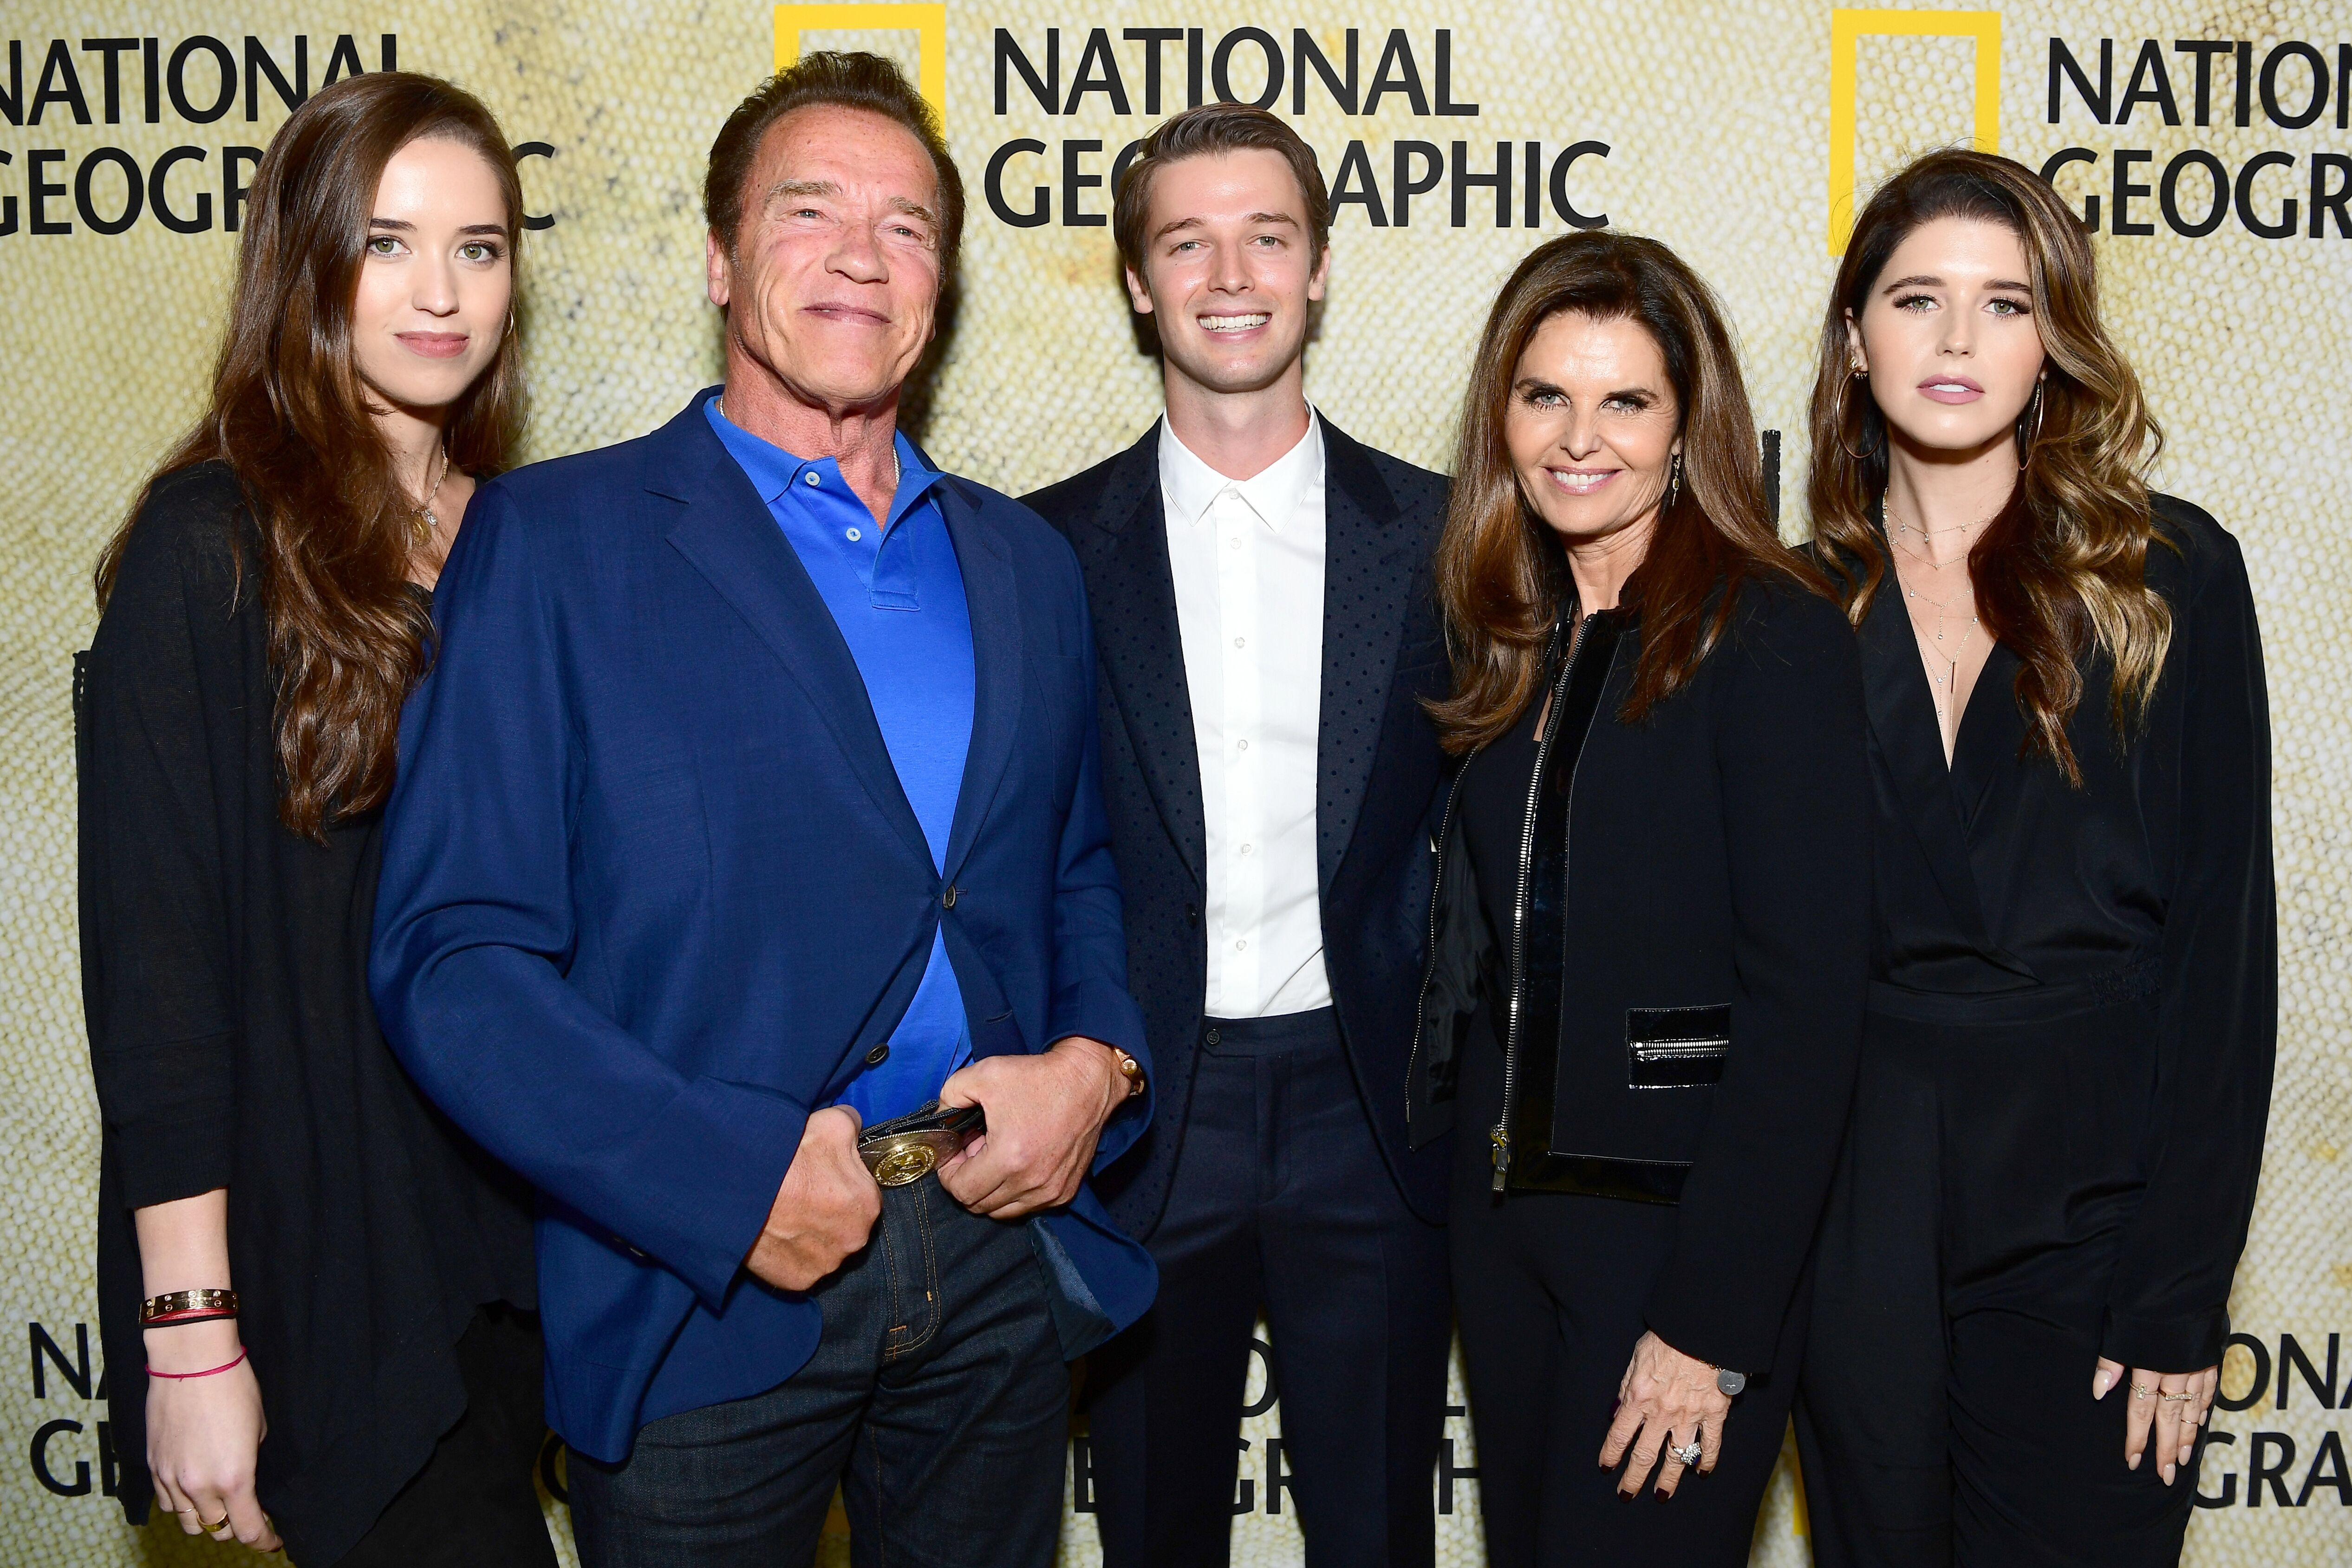 Arnold Schwarzenegger and Maria Shrivers attend the premiere of National Geographic's The Long Road Home. | Source: Getty Images